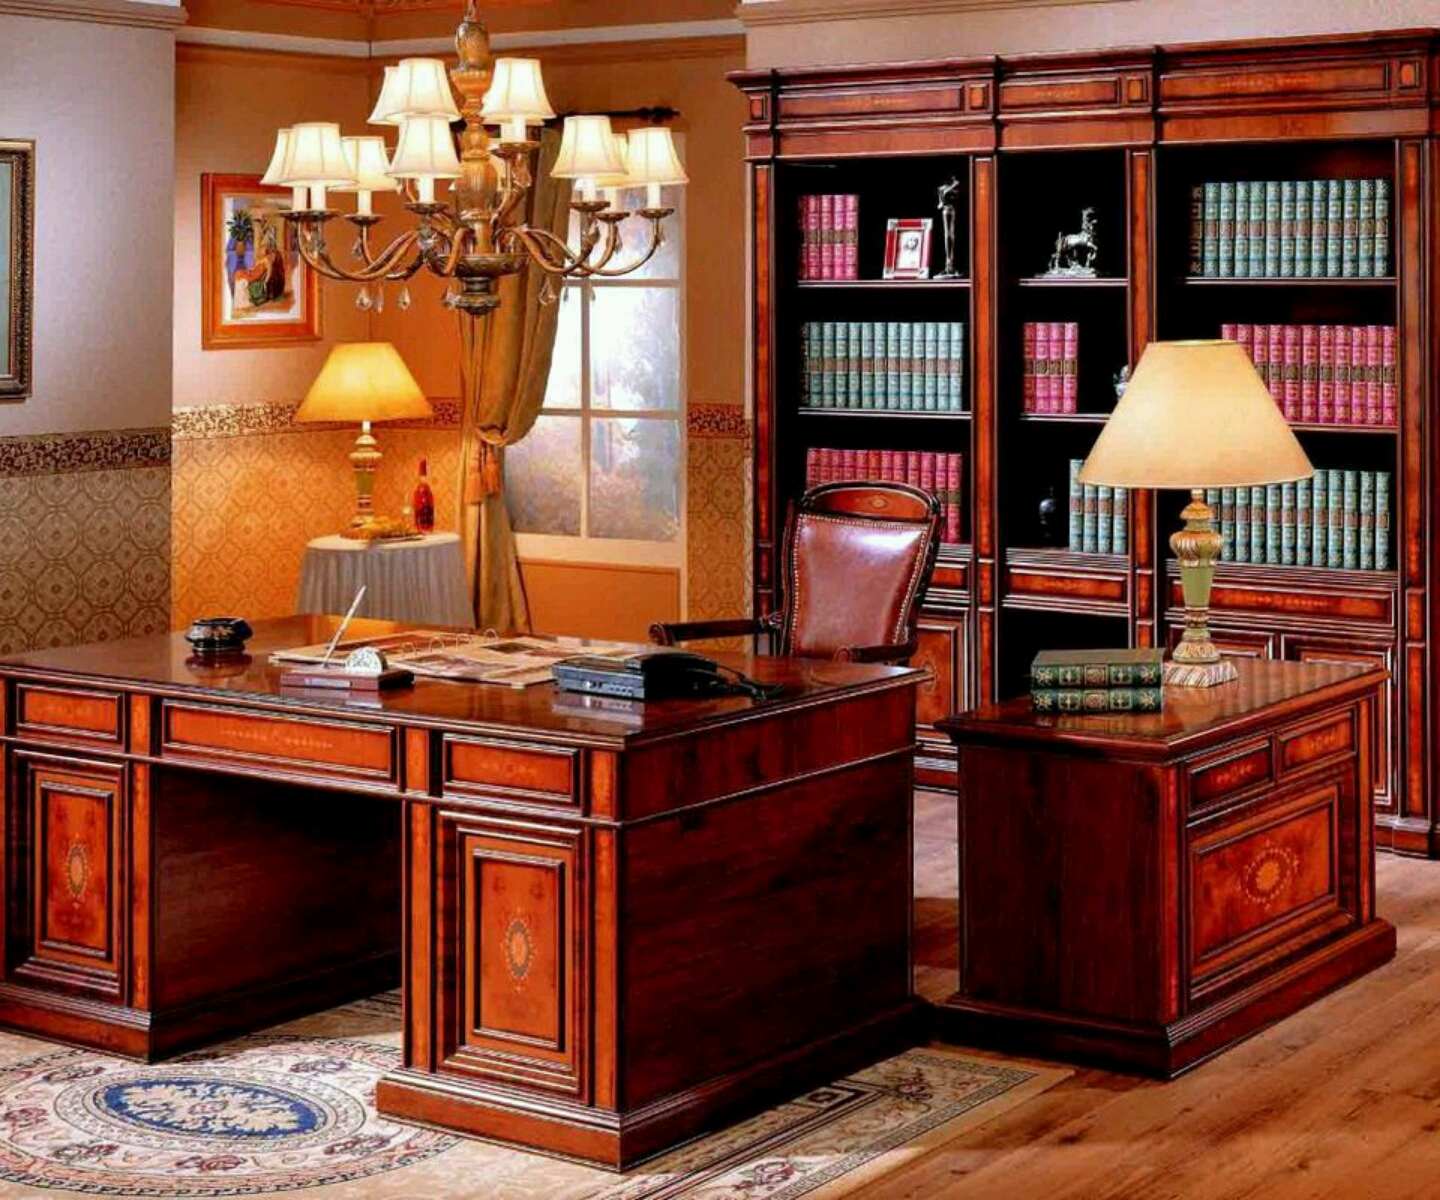 Modern Study Room Design: Modern Furniture: Studyroom Furniture Designs